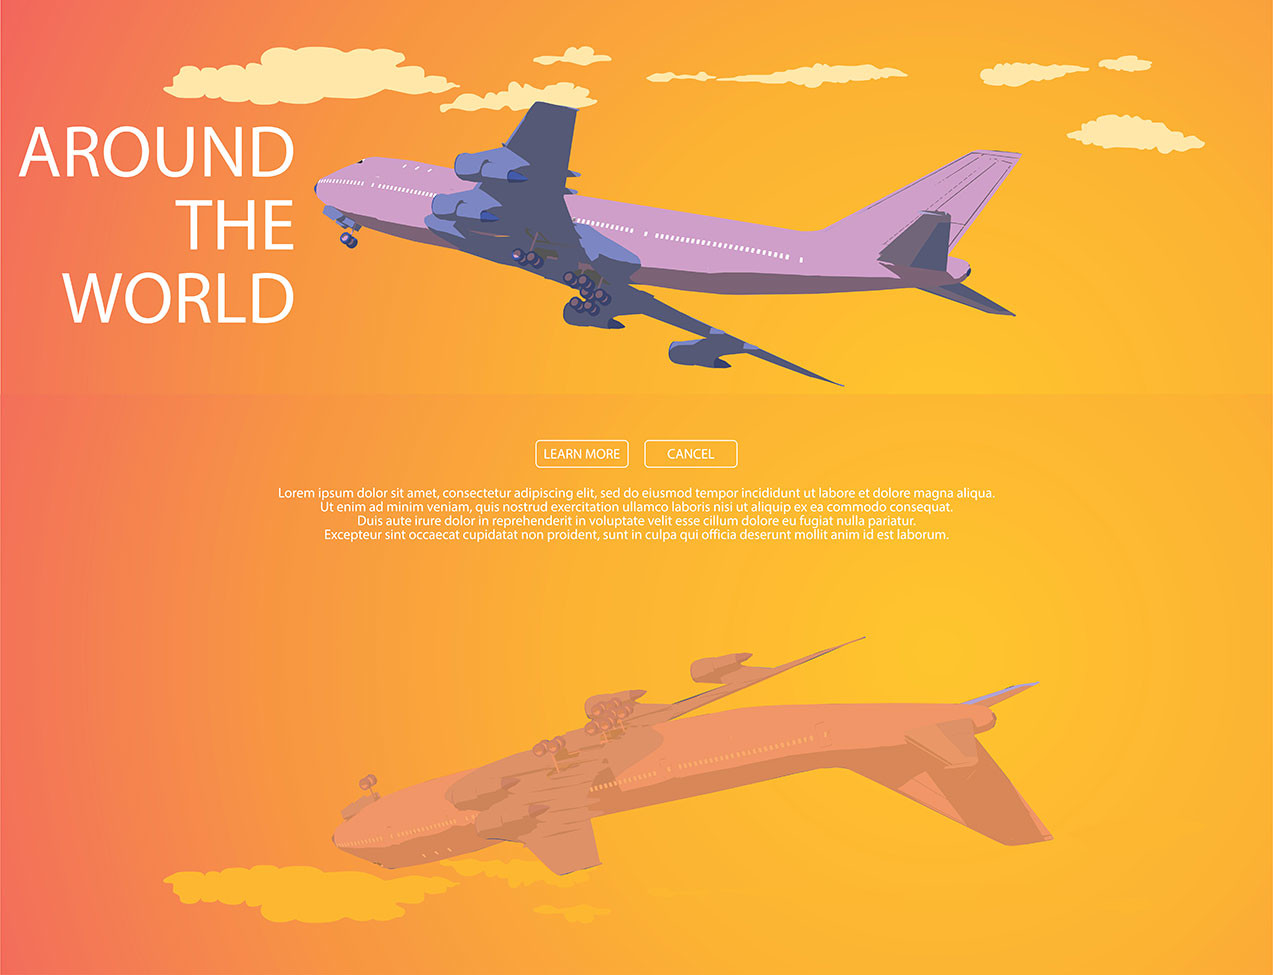 Vladimir Ivanov Web Page For Travel Agency With Orange Background And Plane